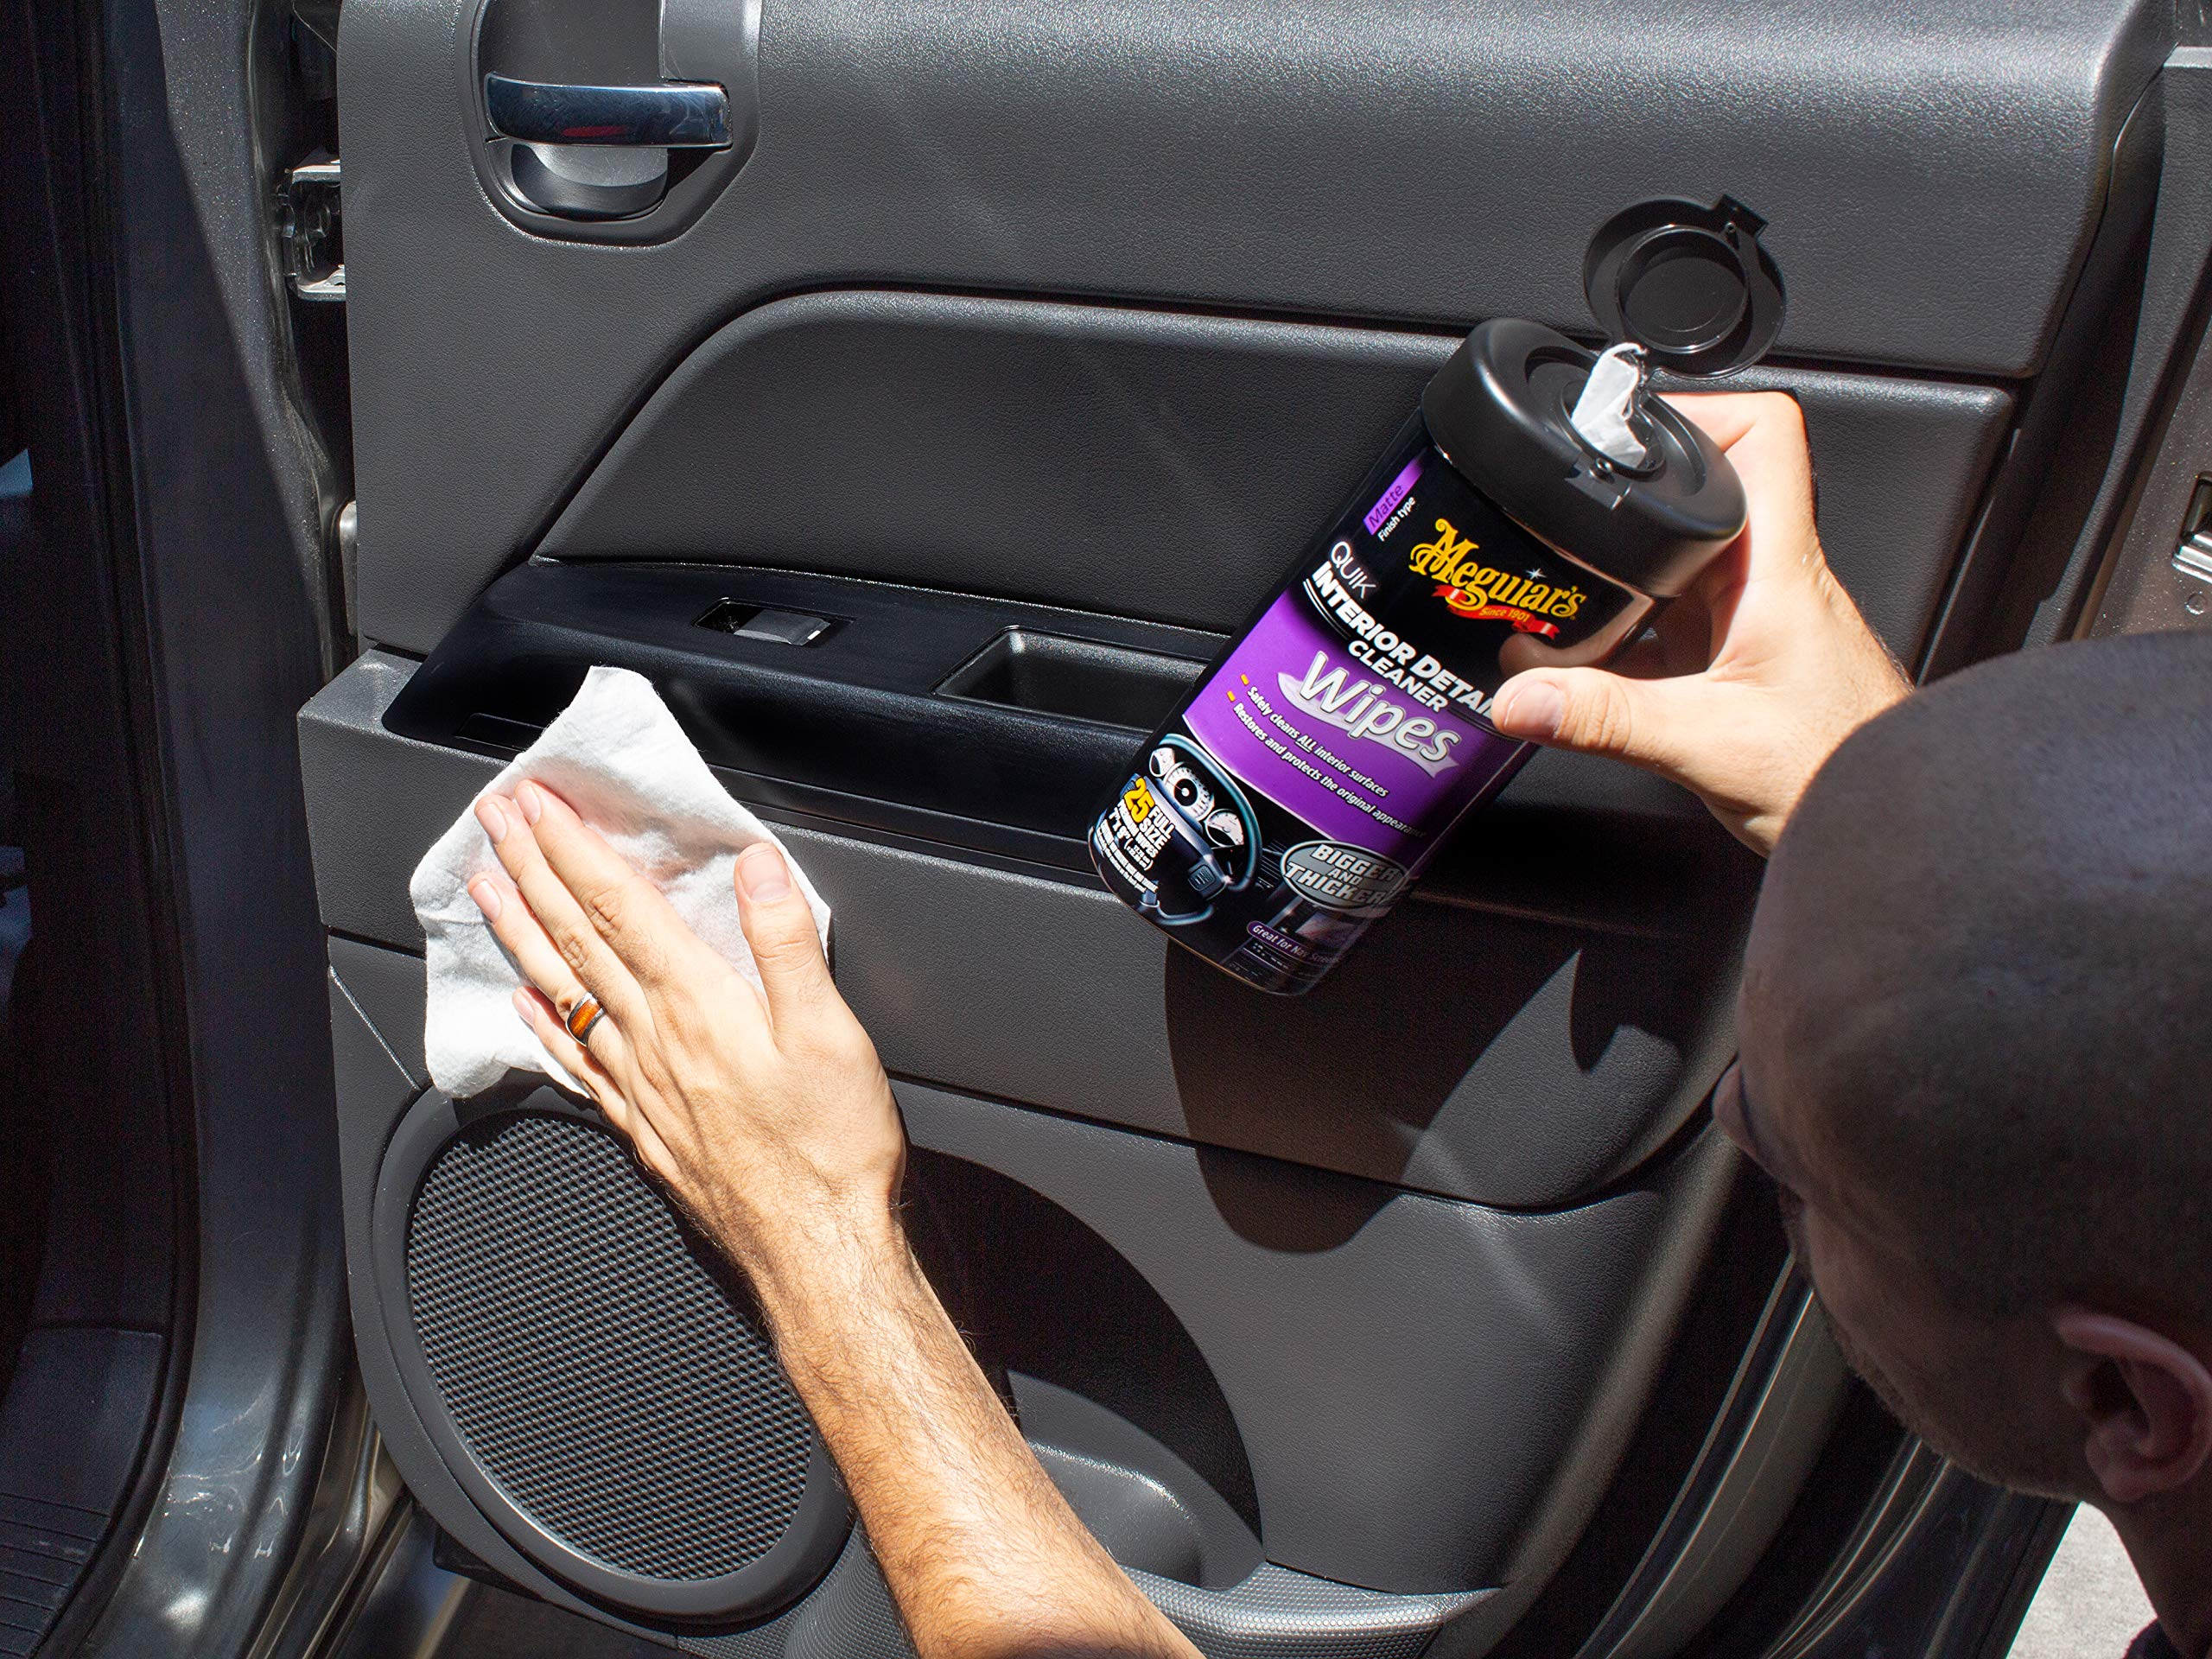 MEGUIAR'S G55146 All in One Essentials Car Care Kit by MEGUIAR'S (Image #7)